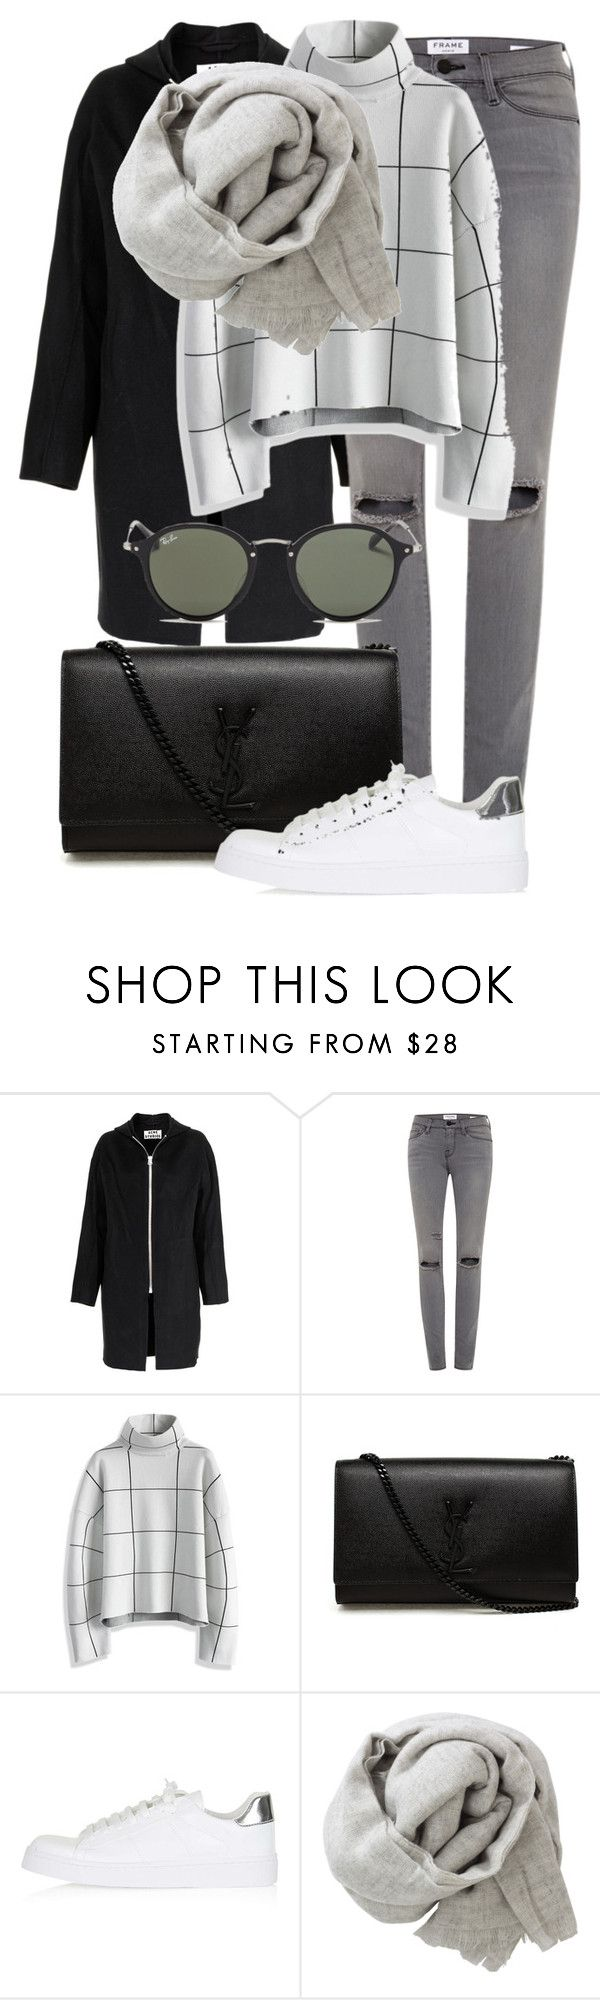 """Untitled #2256"" by annielizjung ❤ liked on Polyvore featuring Acne Studios, Frame, Chicwish, Yves Saint Laurent, Topshop, Brunello Cucinelli and Ray-Ban"